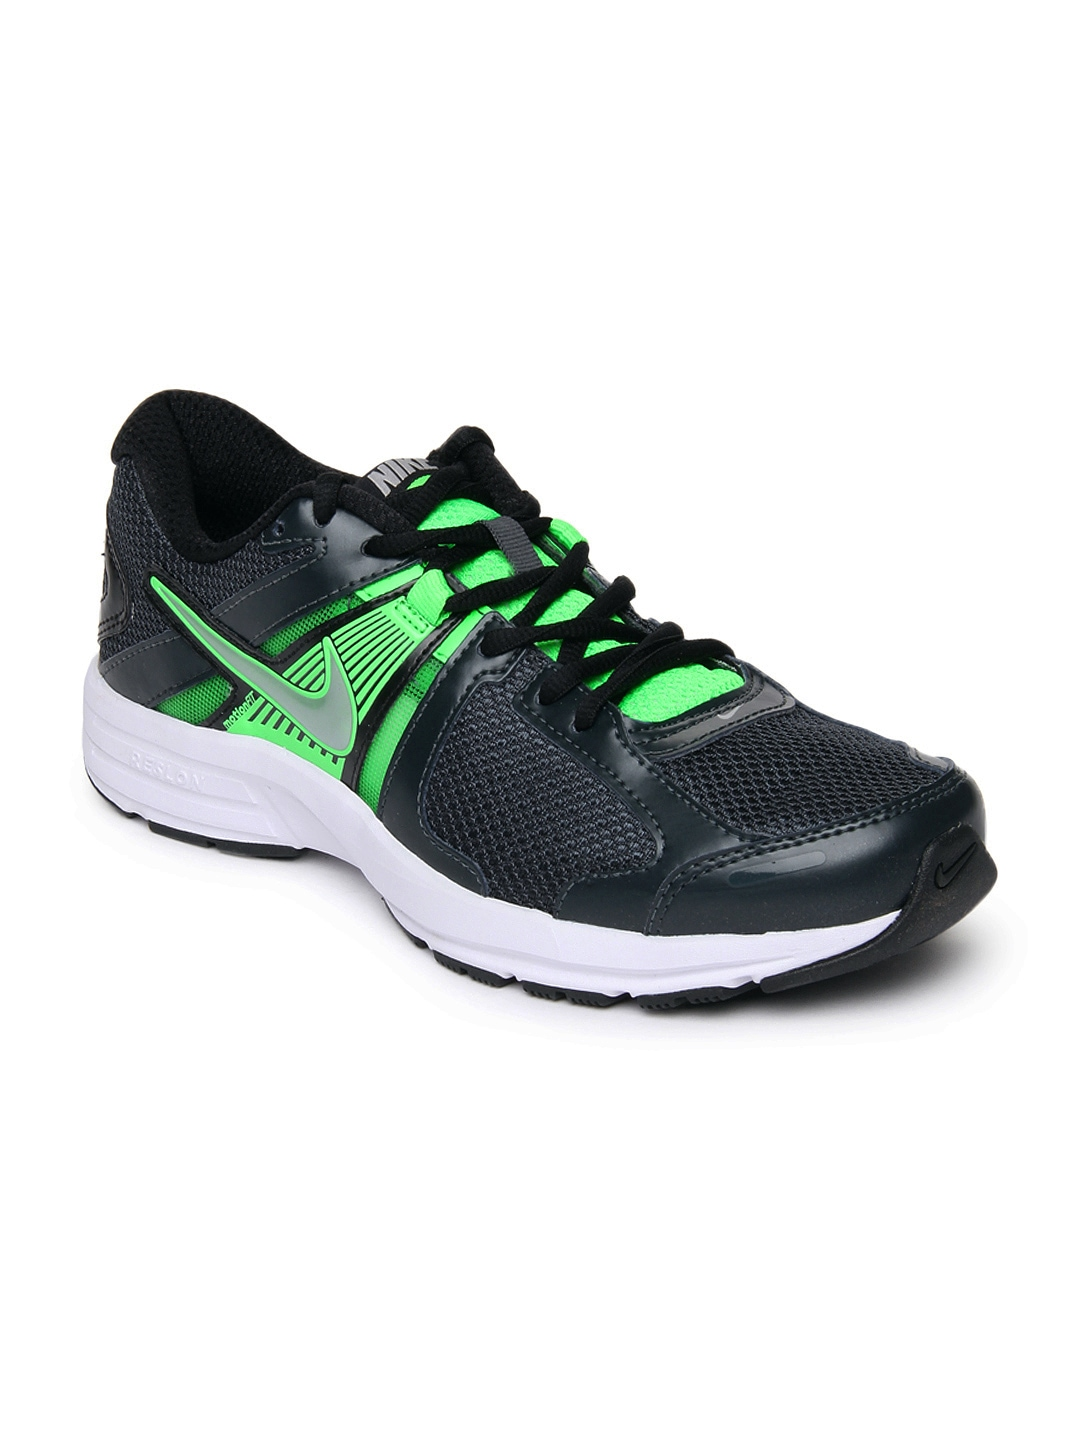 myntra nike black dart 10 msl running shoes 683955